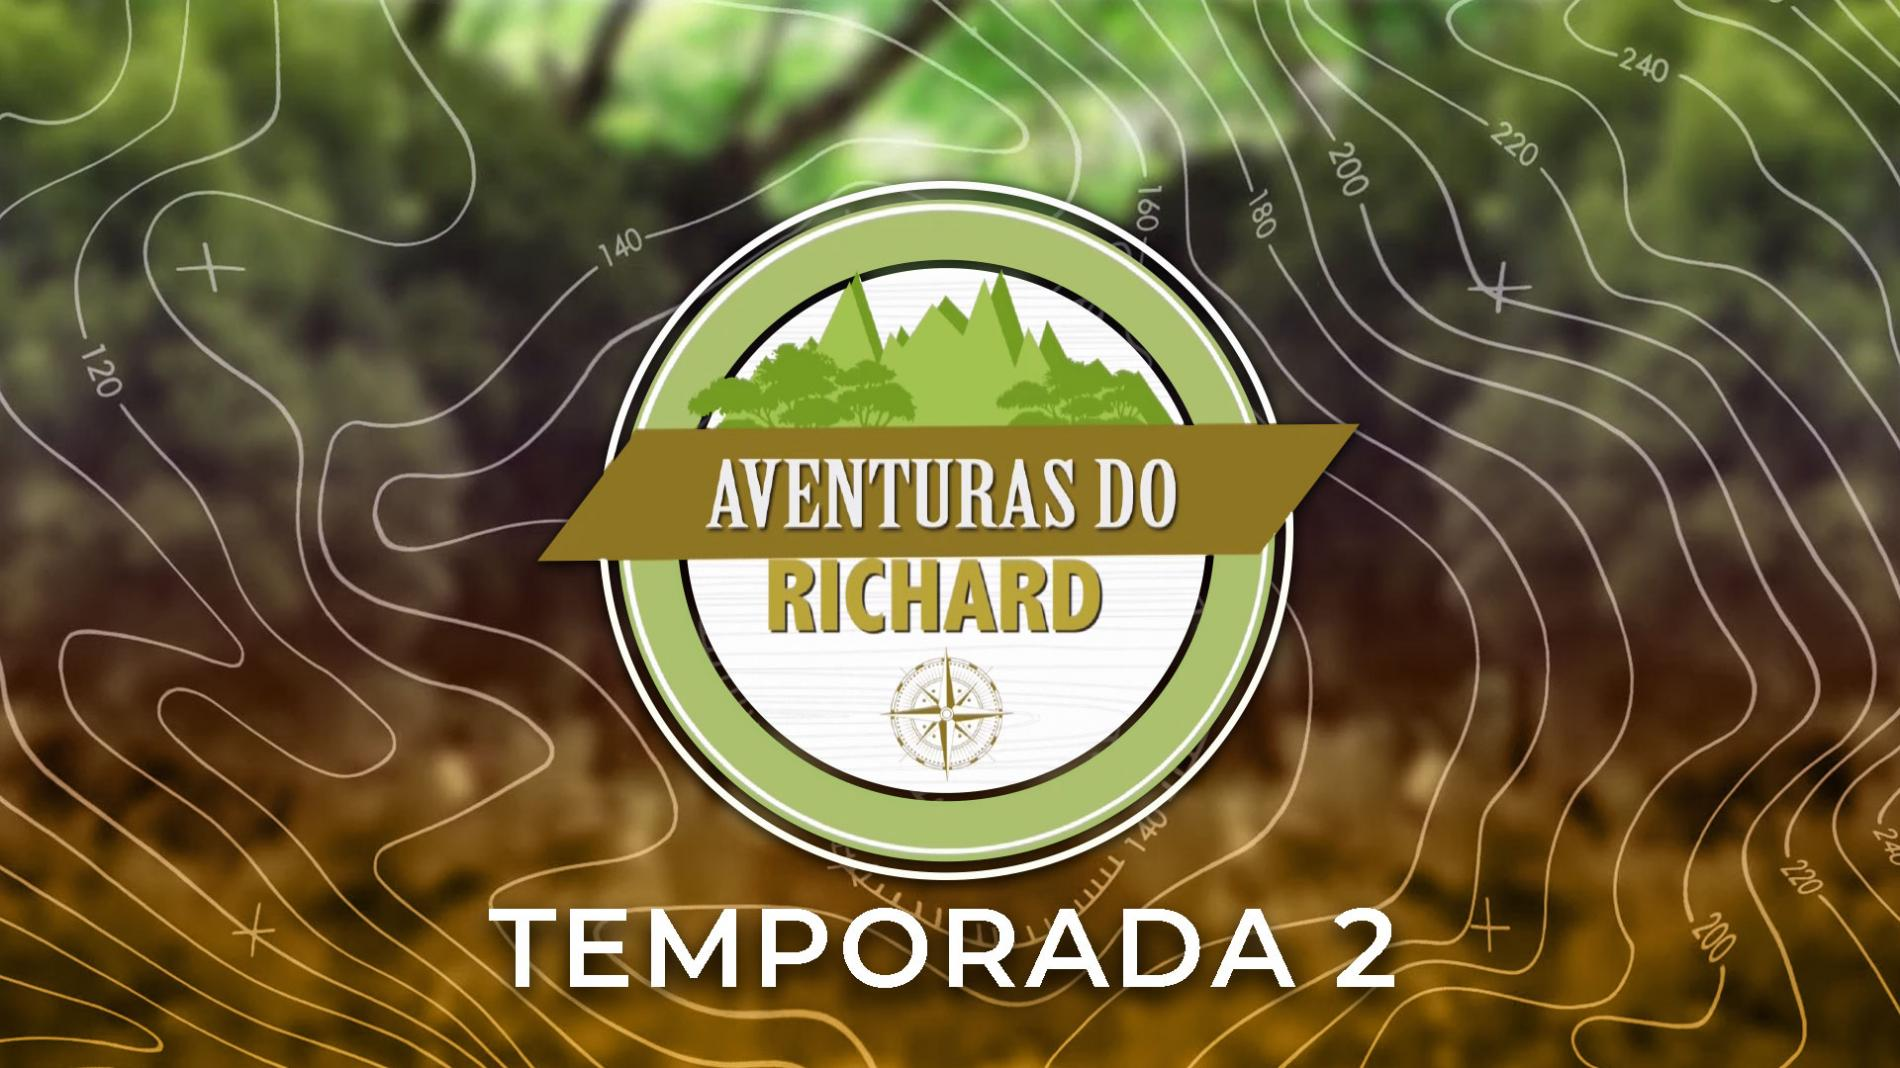 Aventuras do Richard - Temporada T02 - Episódio E01